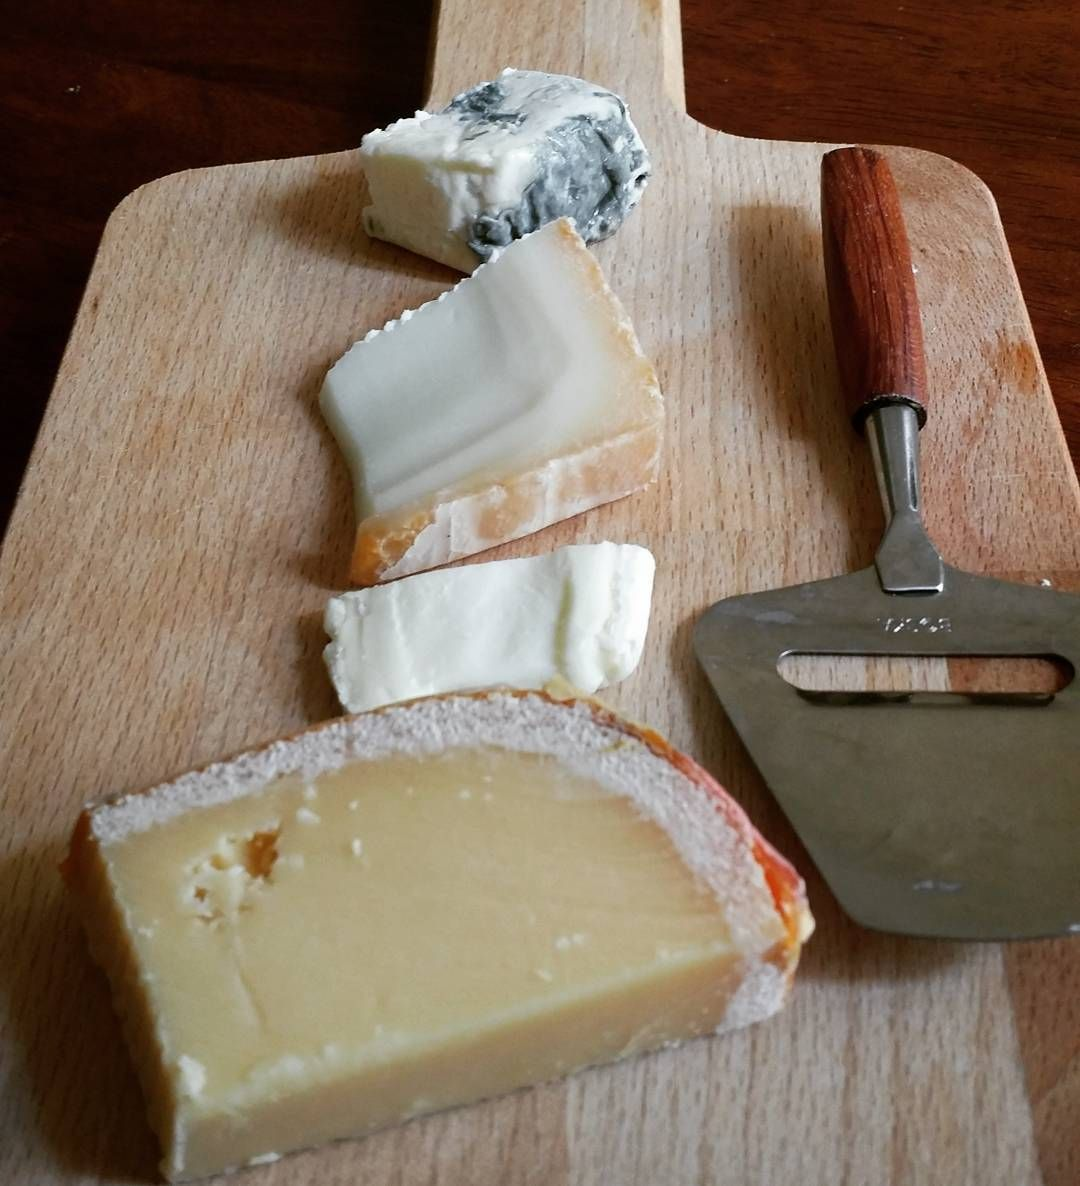 When I've combined my world of craft beers with the best cheeses from all over…